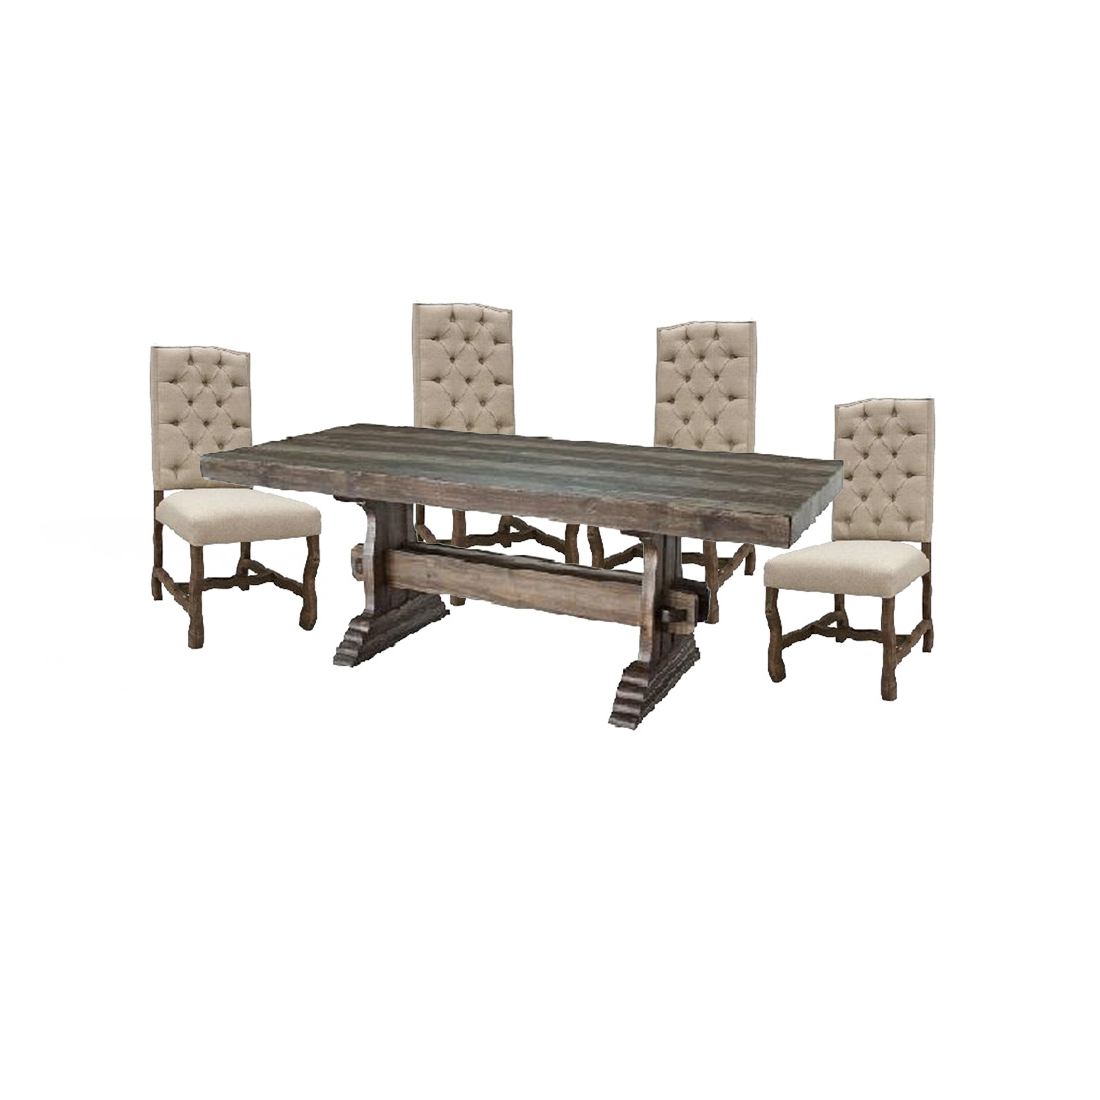 Avondale Counter Height Dining Tables Intended For Favorite Avondale Dining Set – 4 State Rustic Furniture (View 13 of 25)